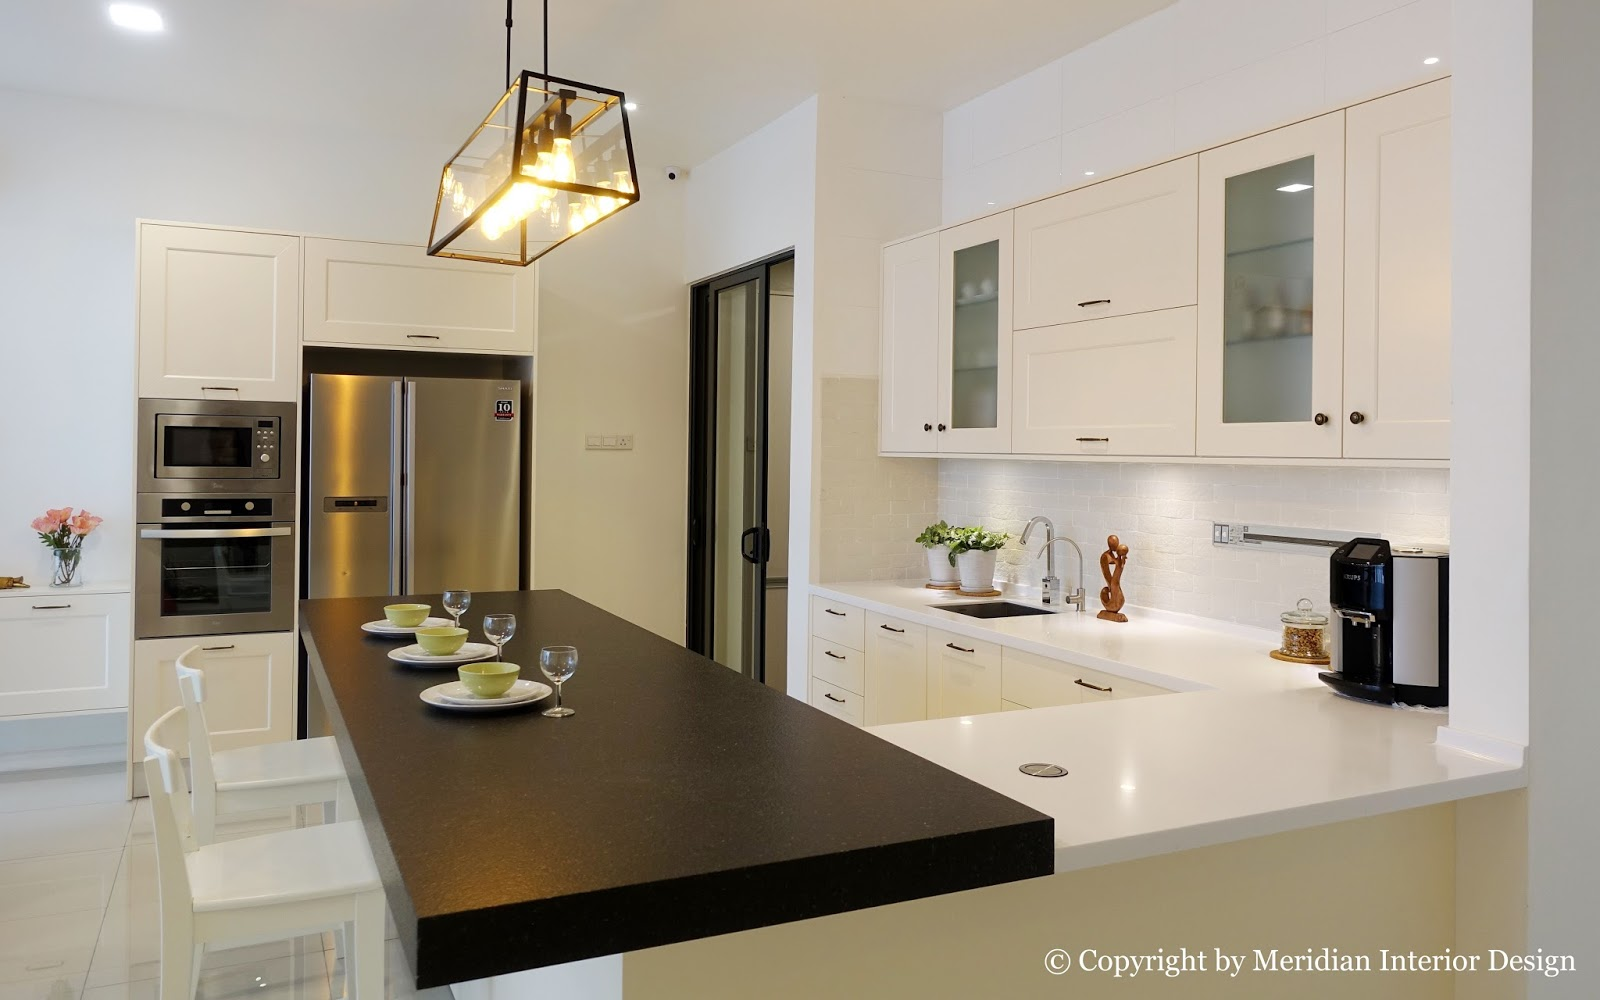 Kitchen Side View : Meridian interior design and kitchen in kuala